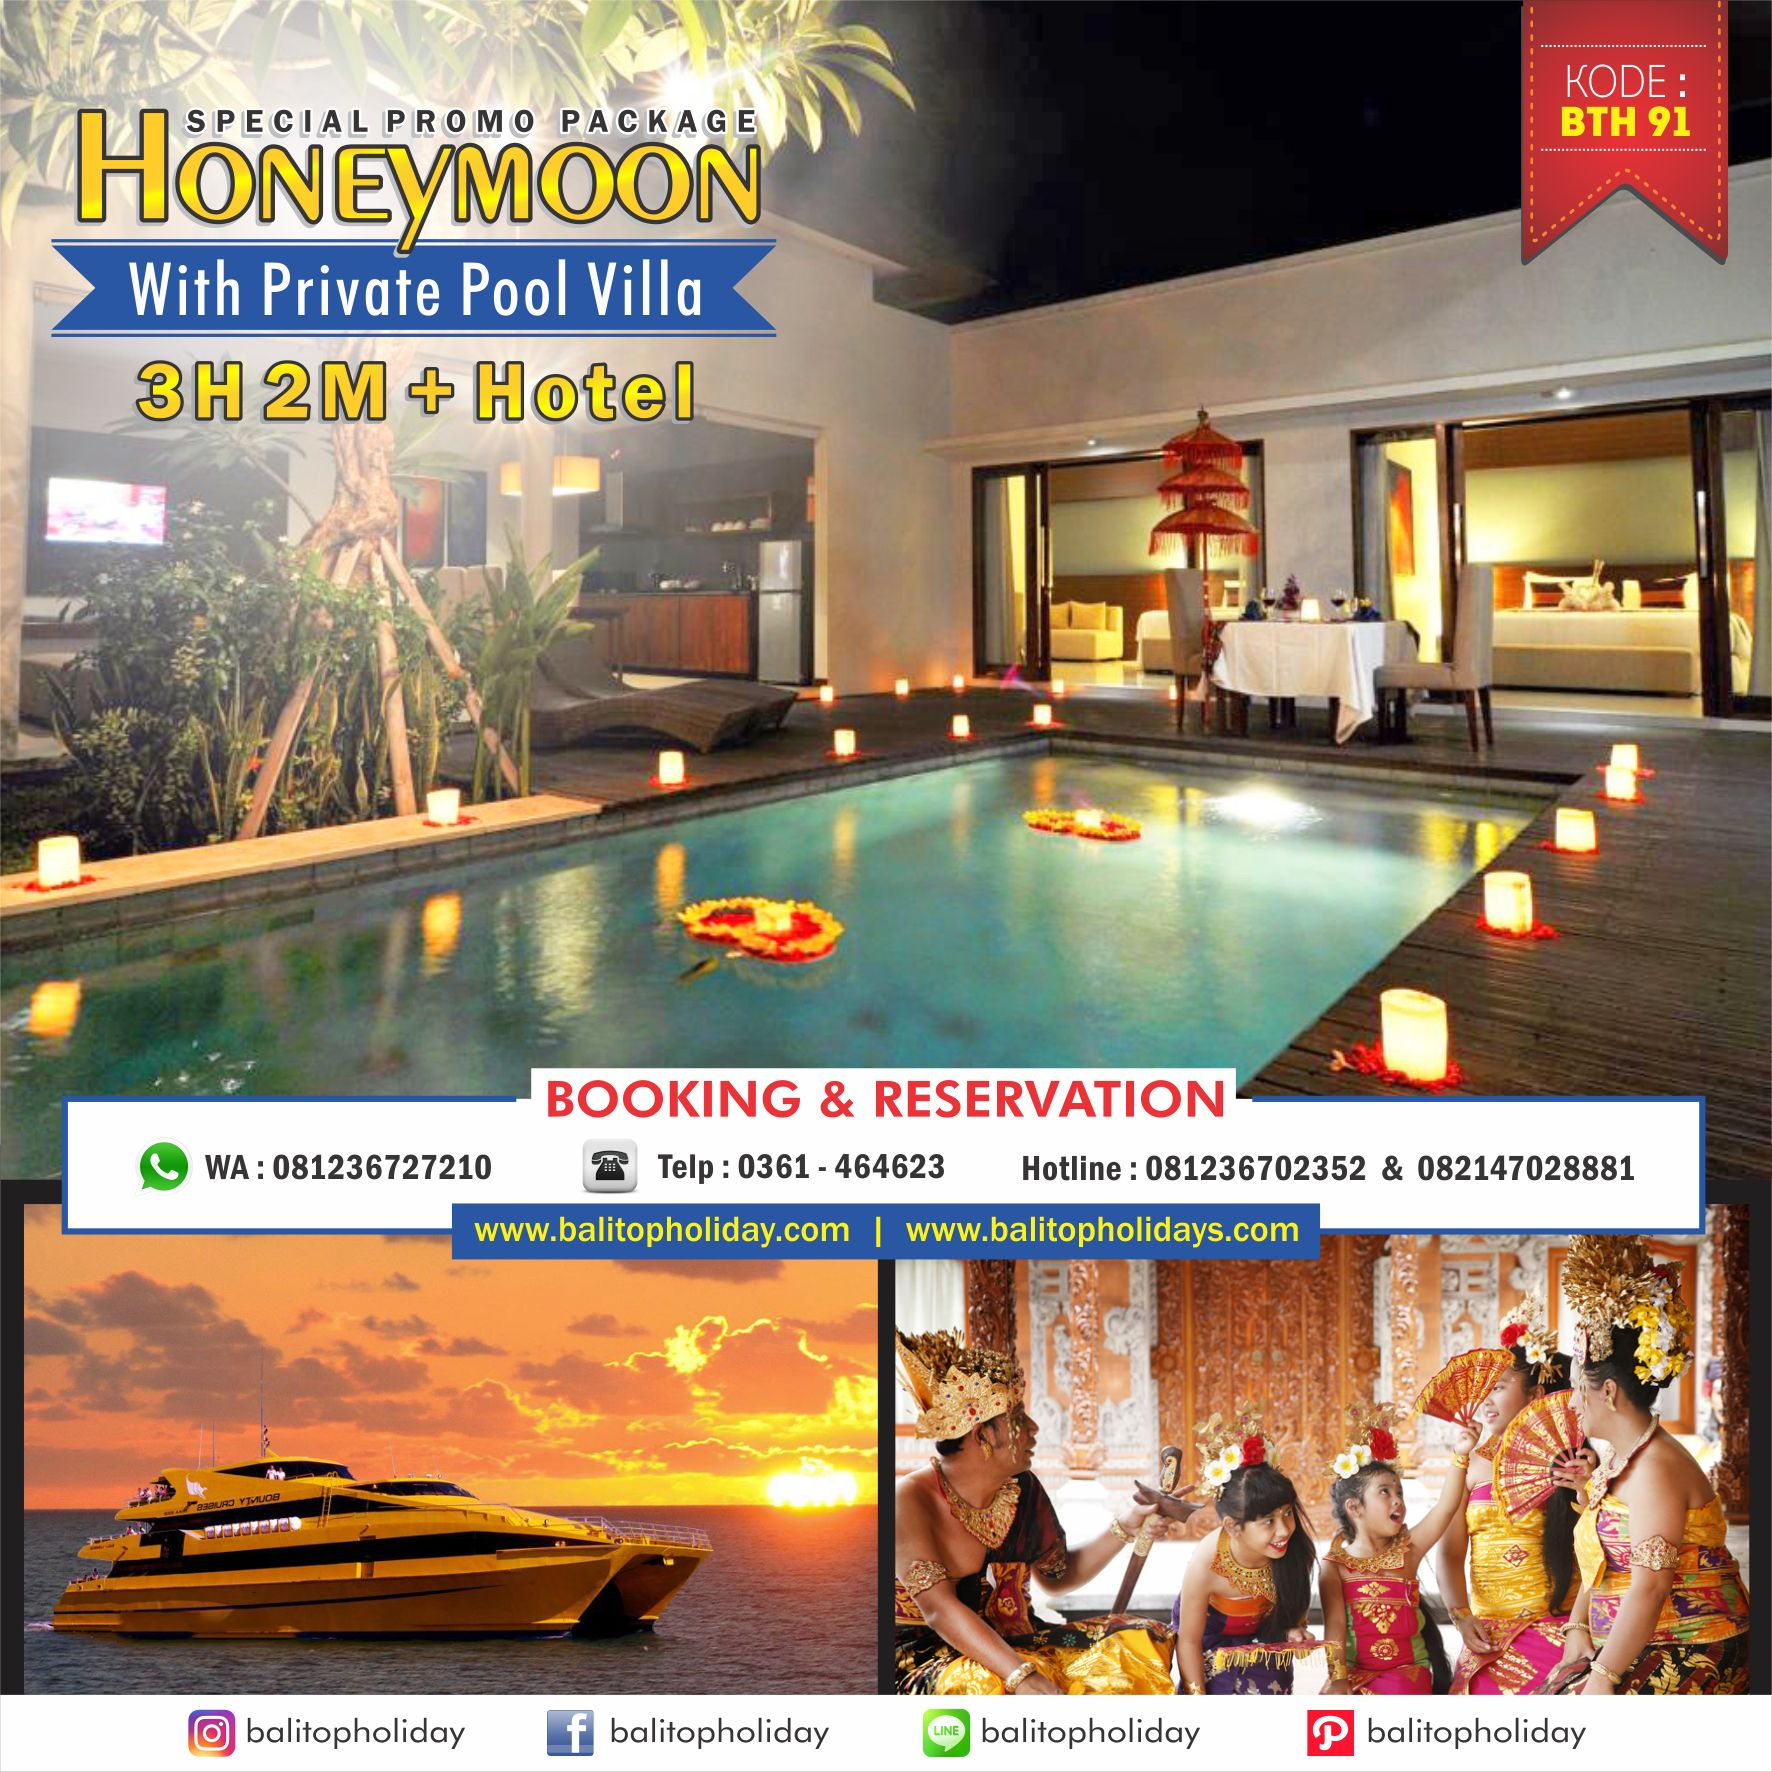 Paket Honeymoon Bali 2021